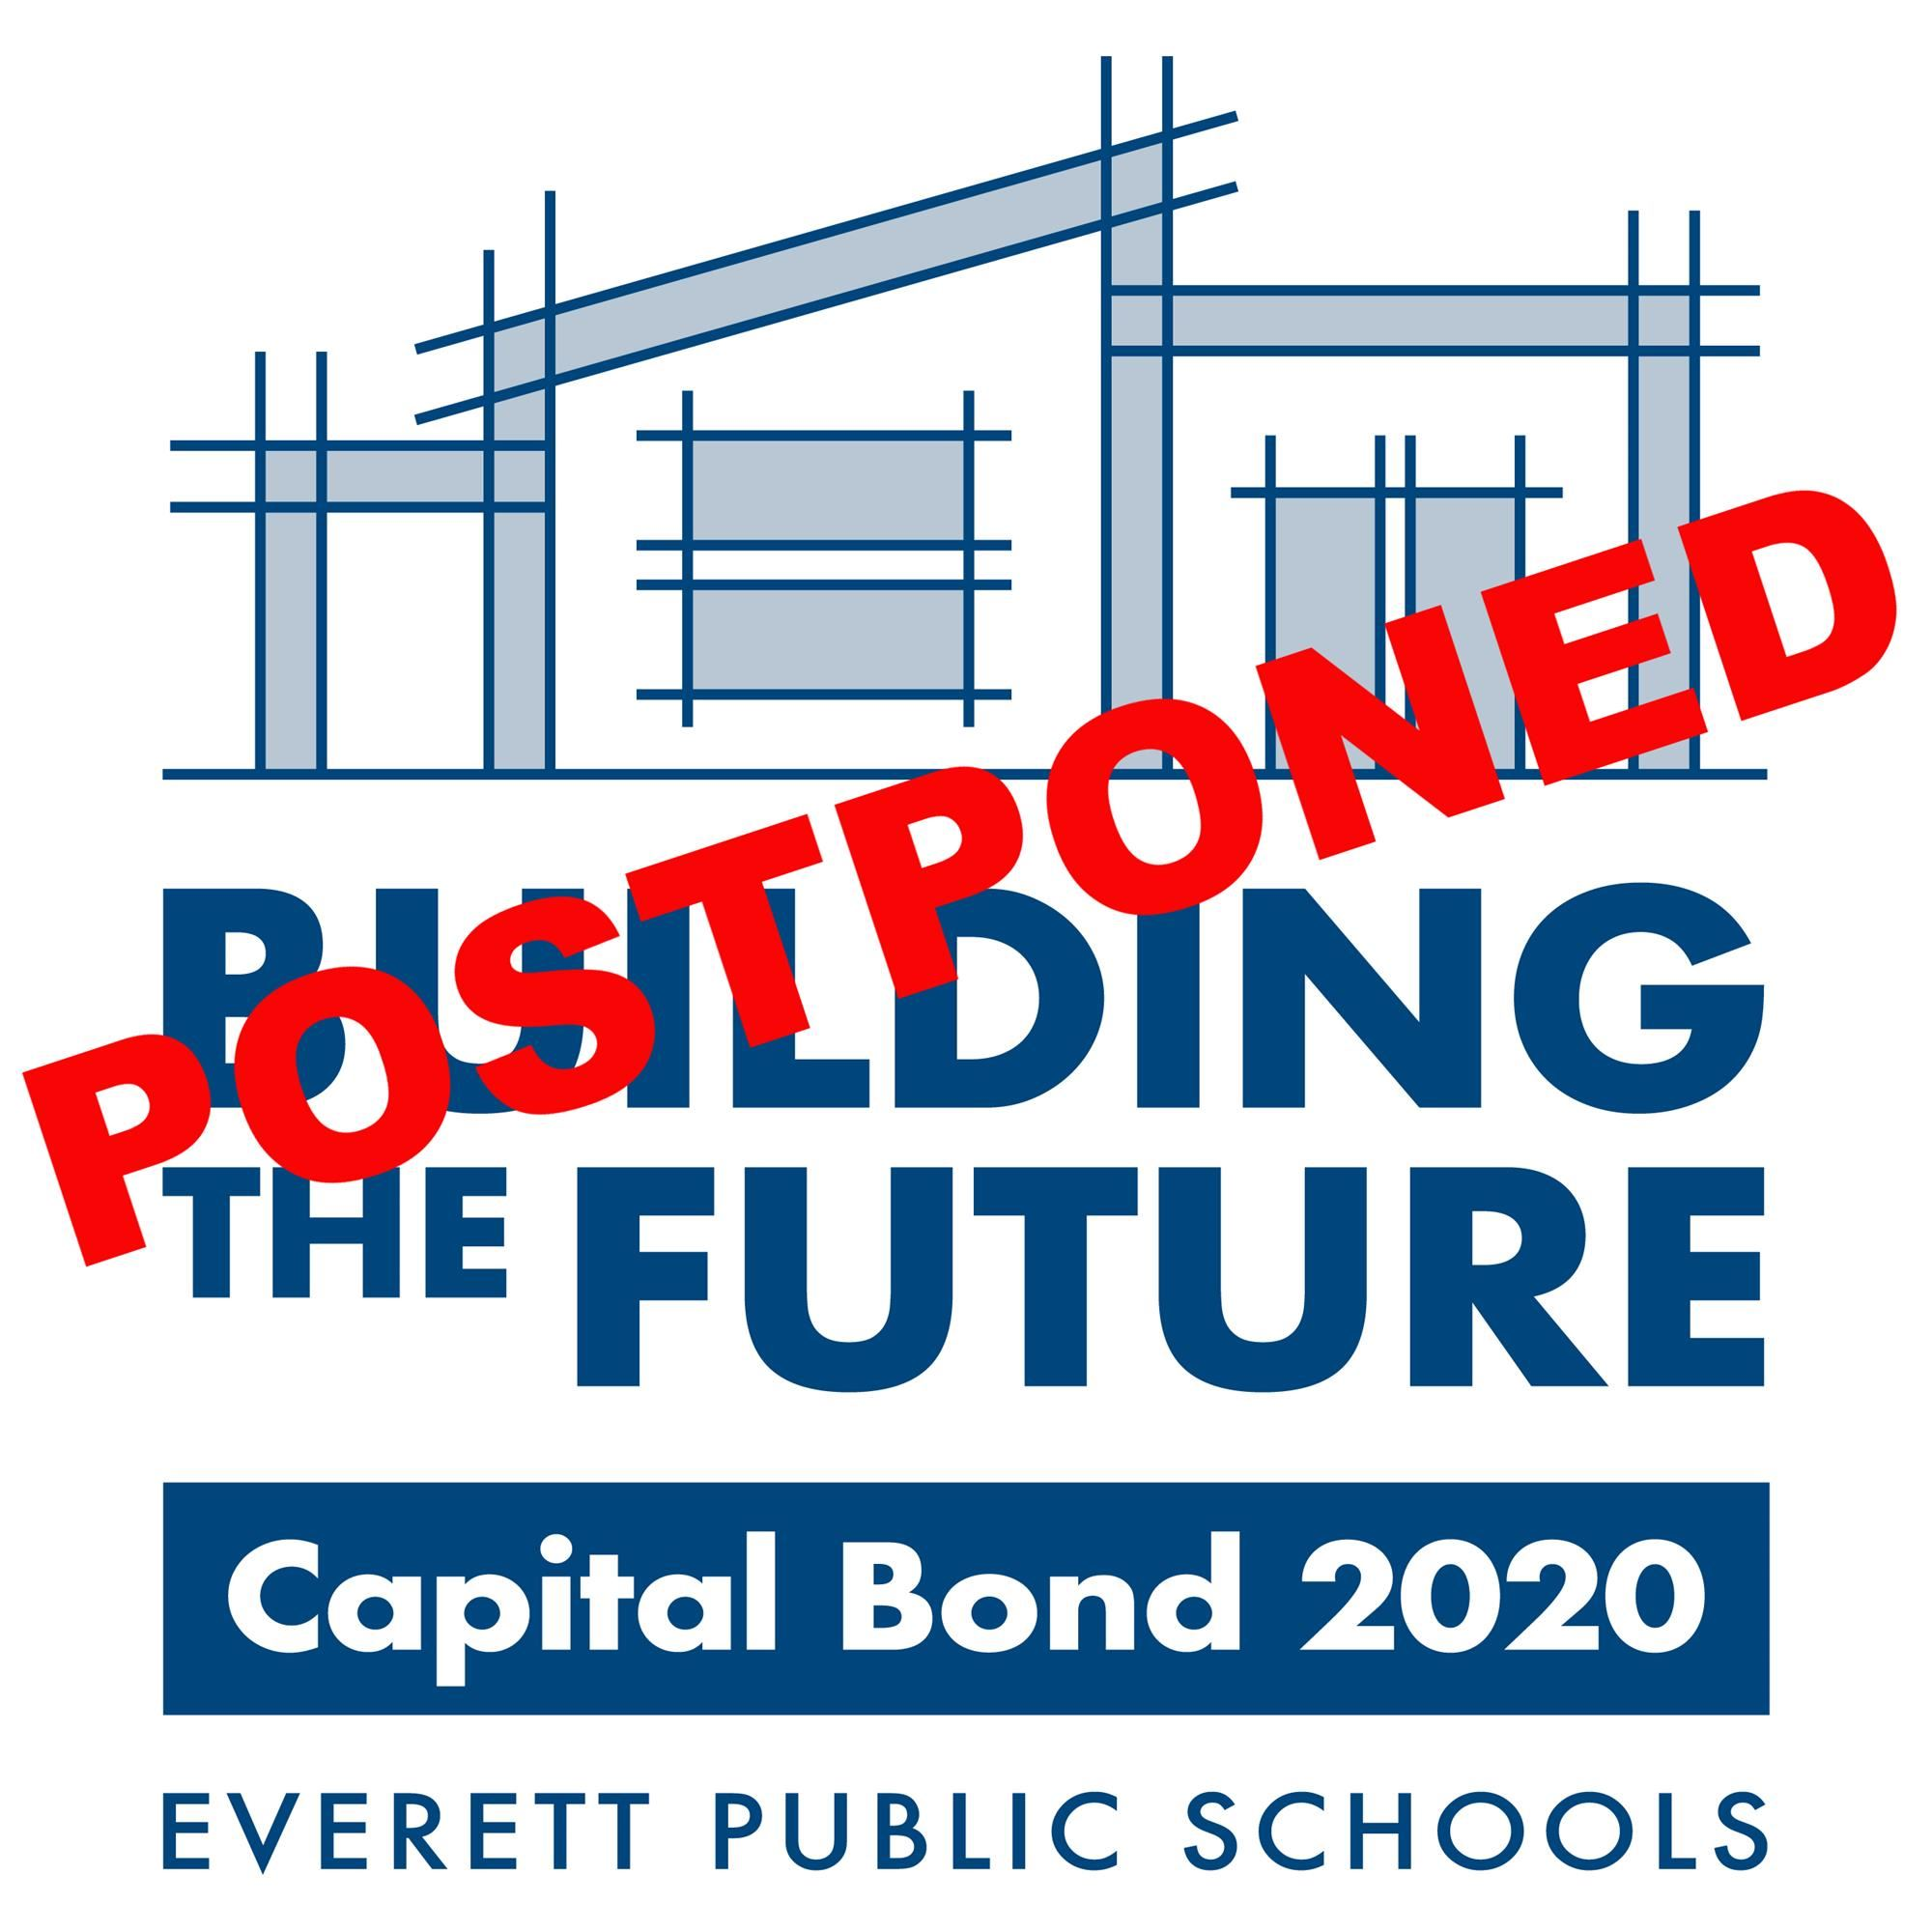 2020 Capital Bond POSTPONED